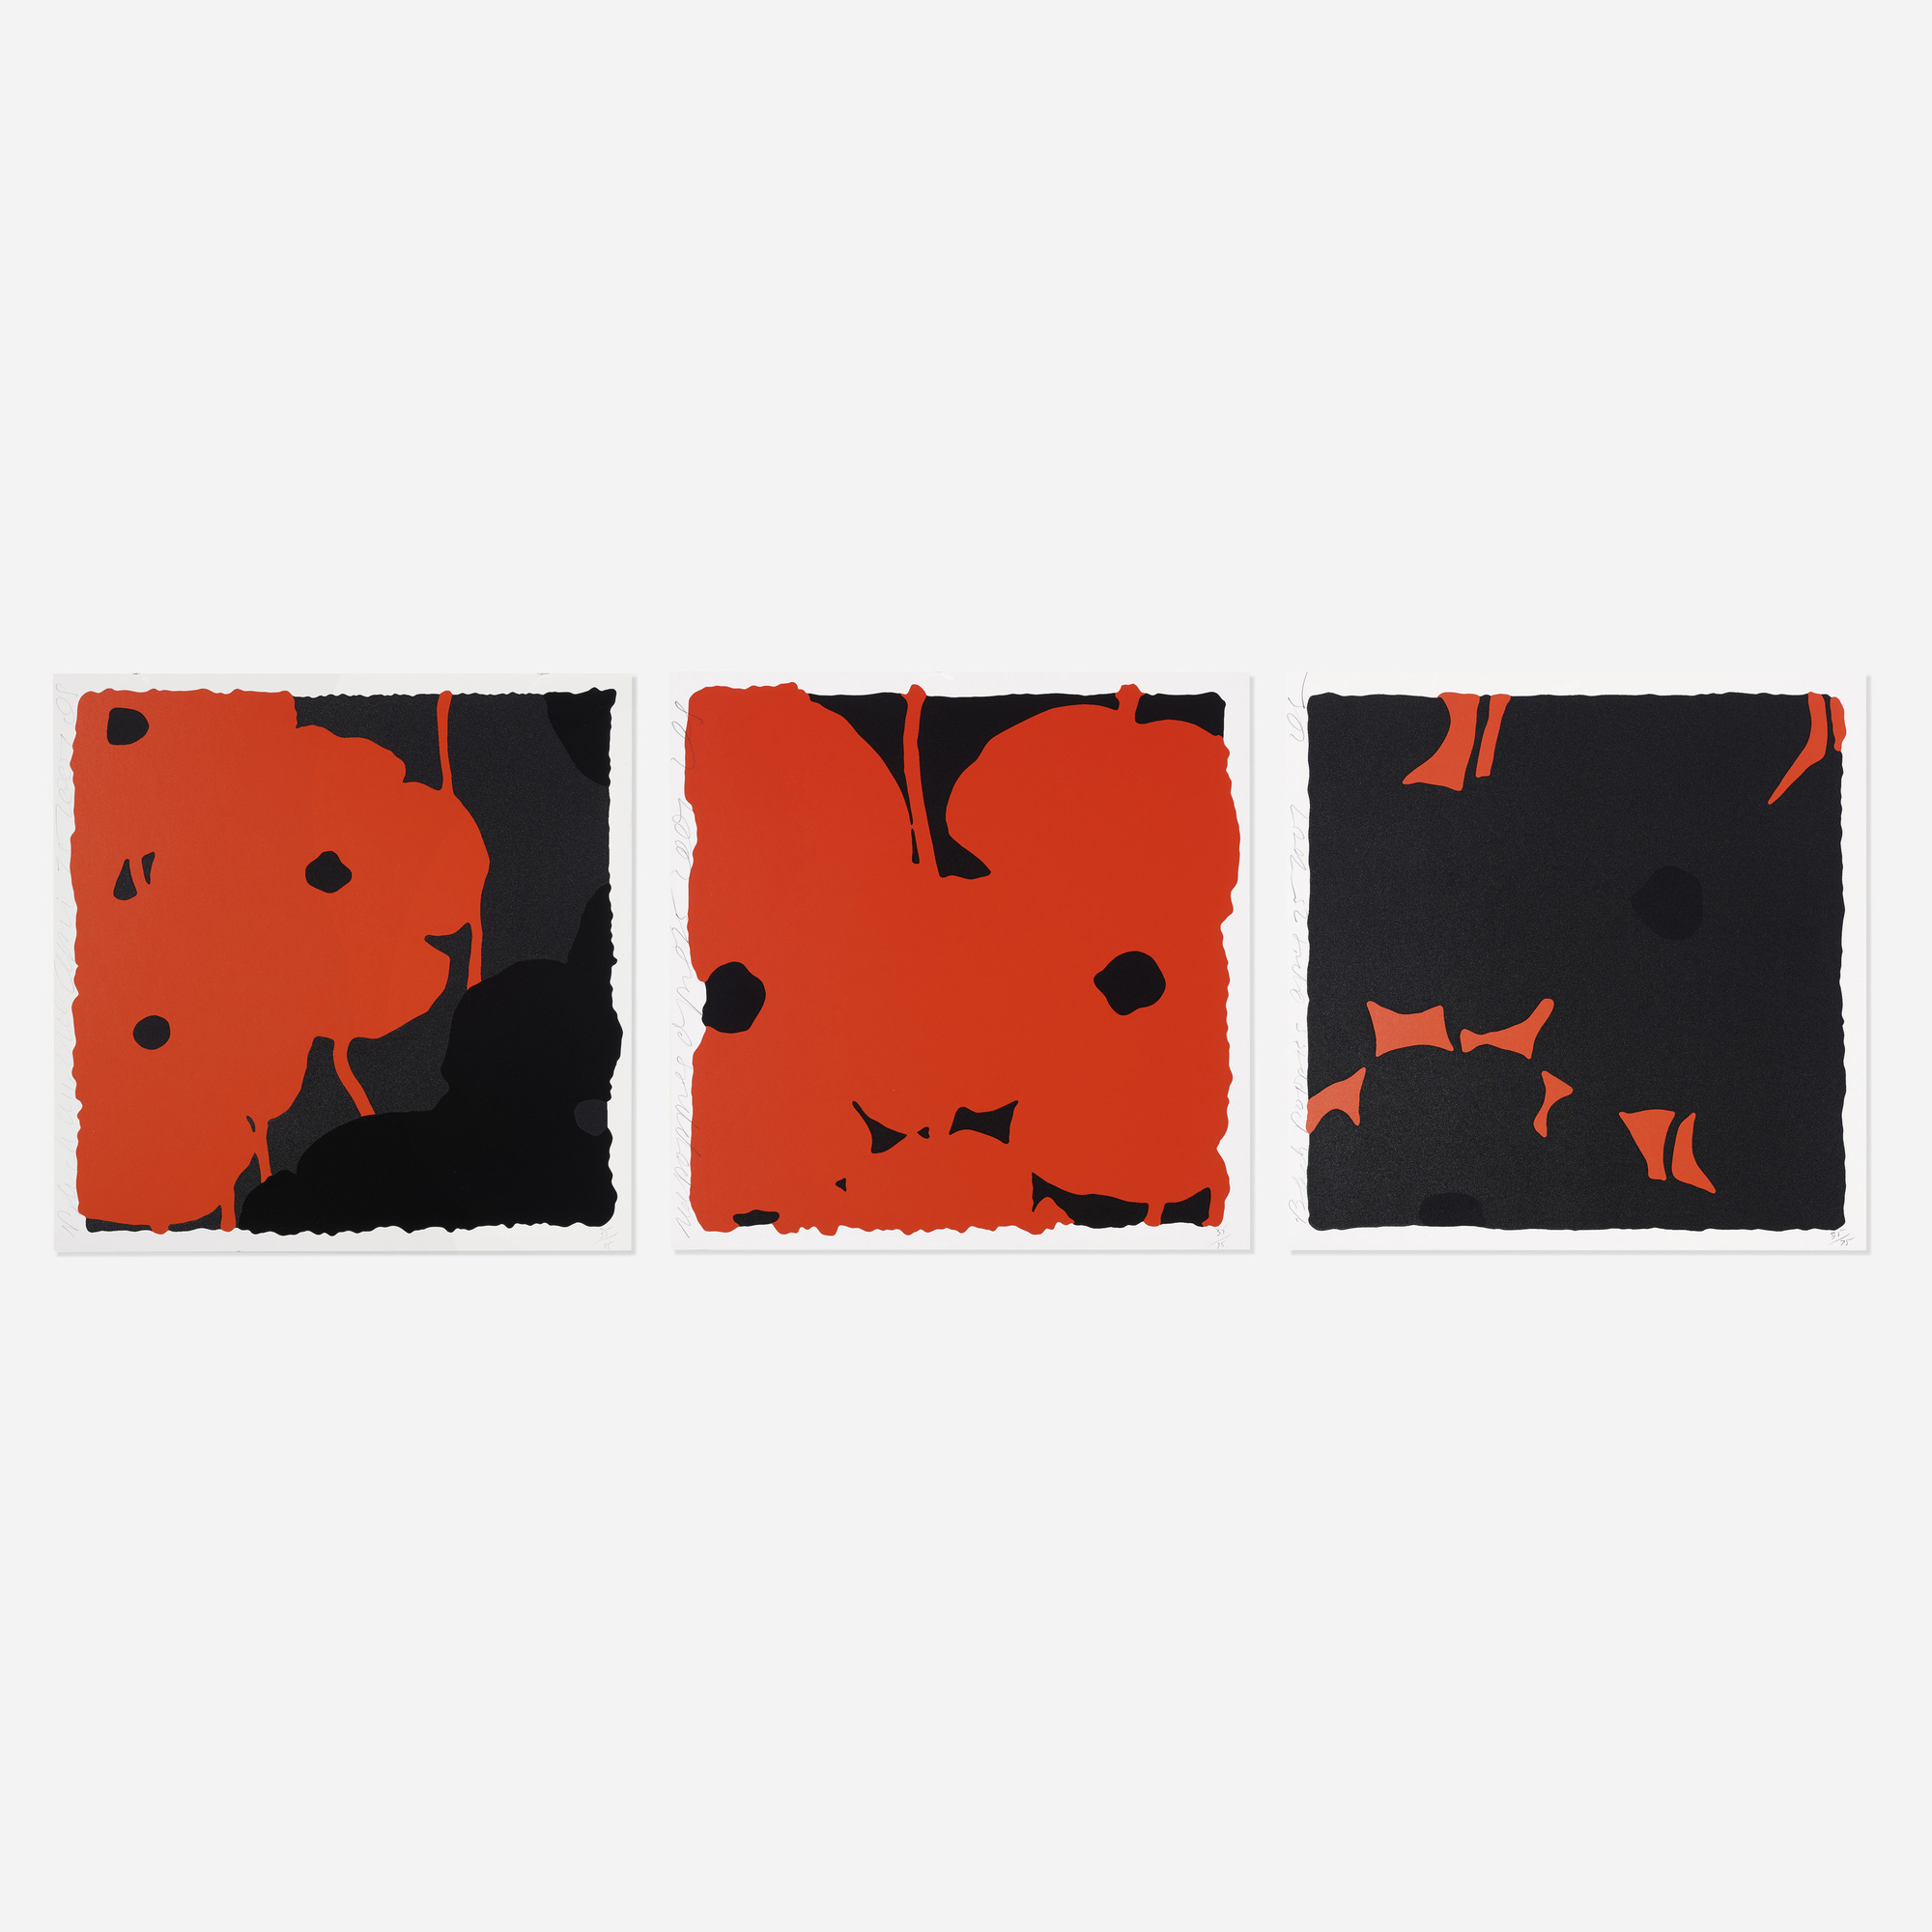 202: Donald Sultan / Poppies (three works) (1 of 1)